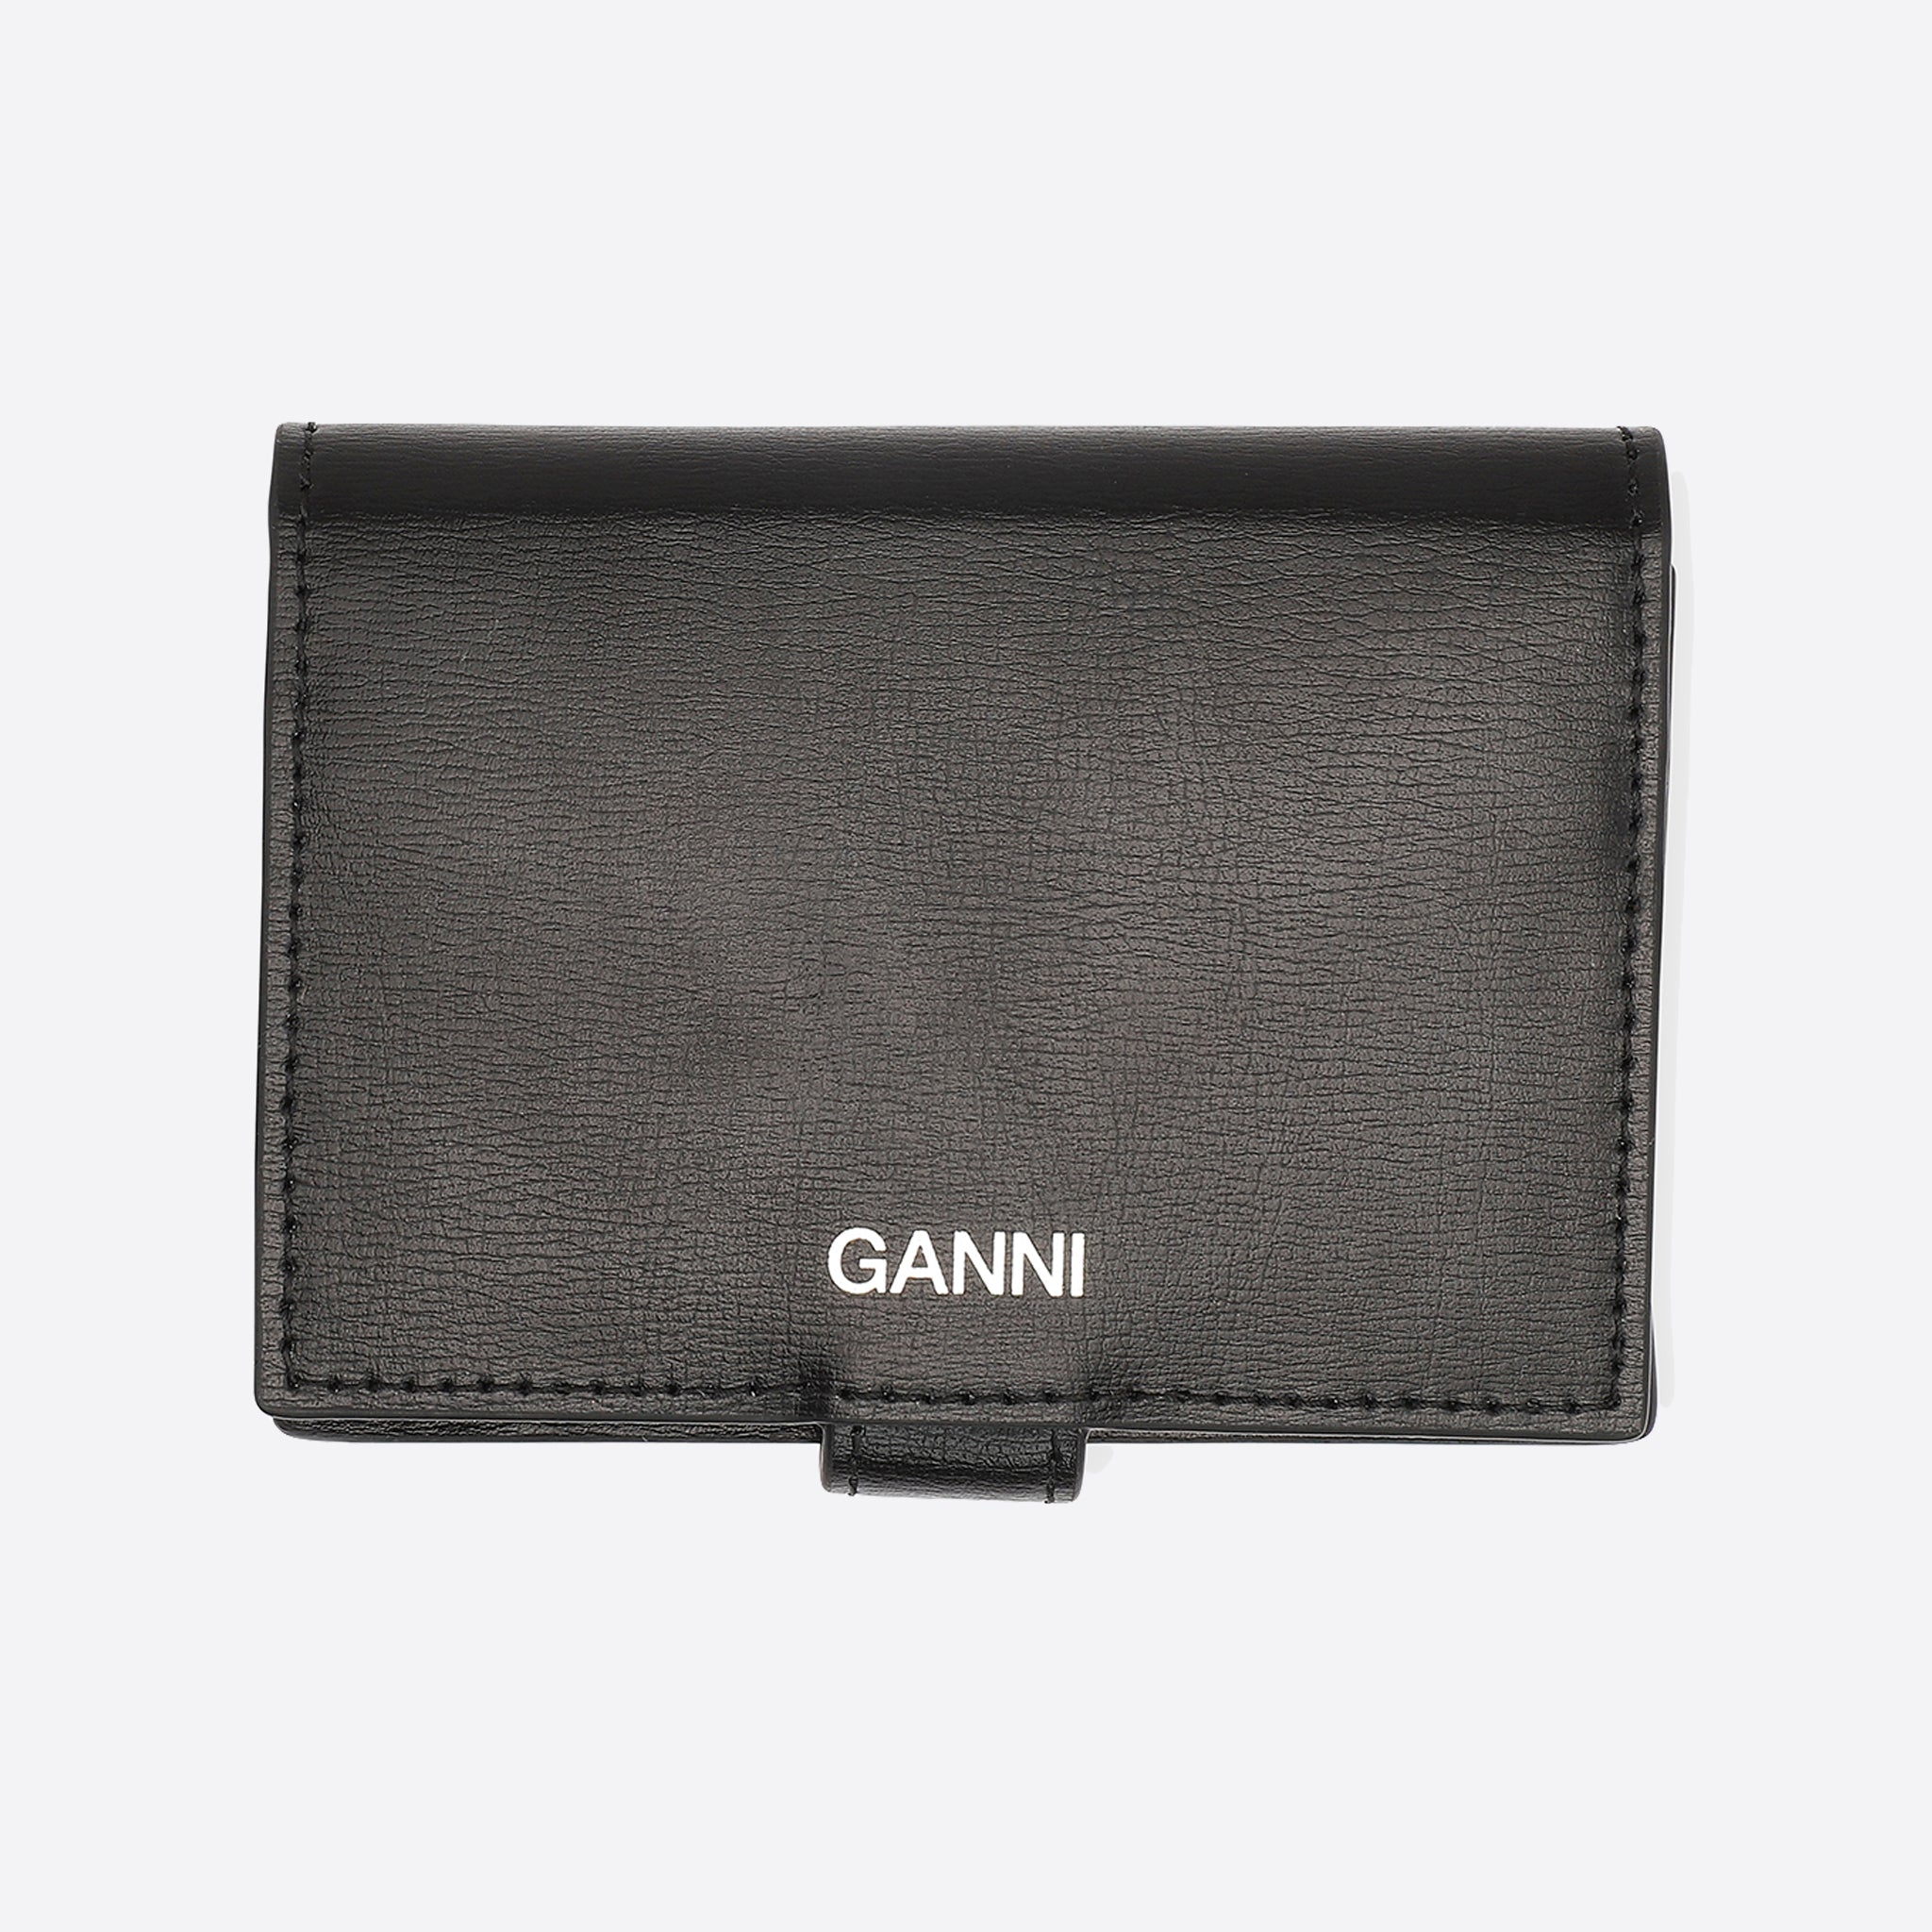 Ganni Textured Leather Mini Wallet in Black